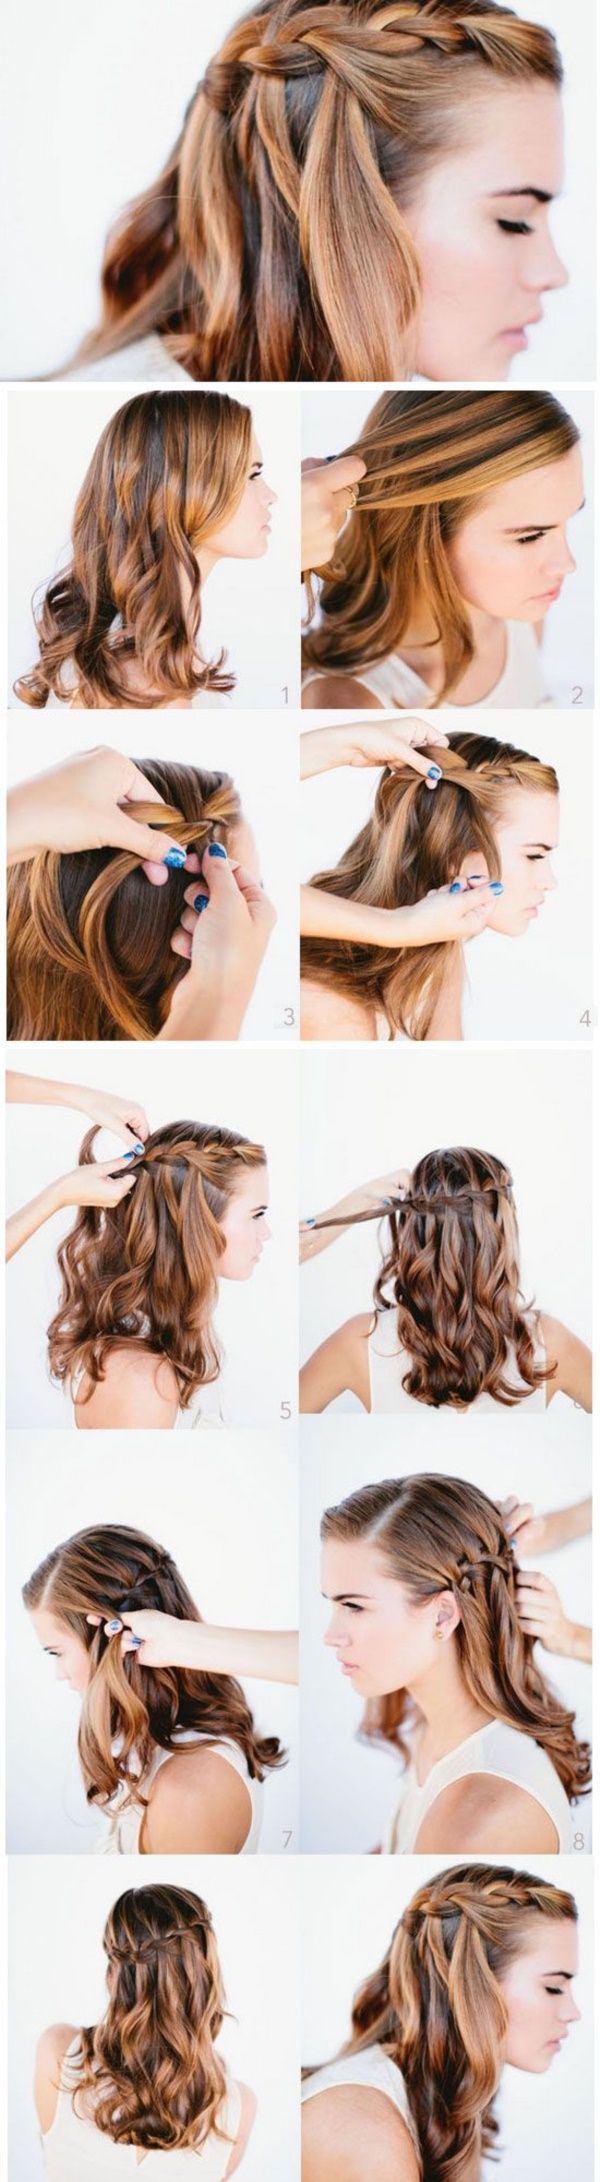 quick and easy step by step hairstyles for girls hair styles